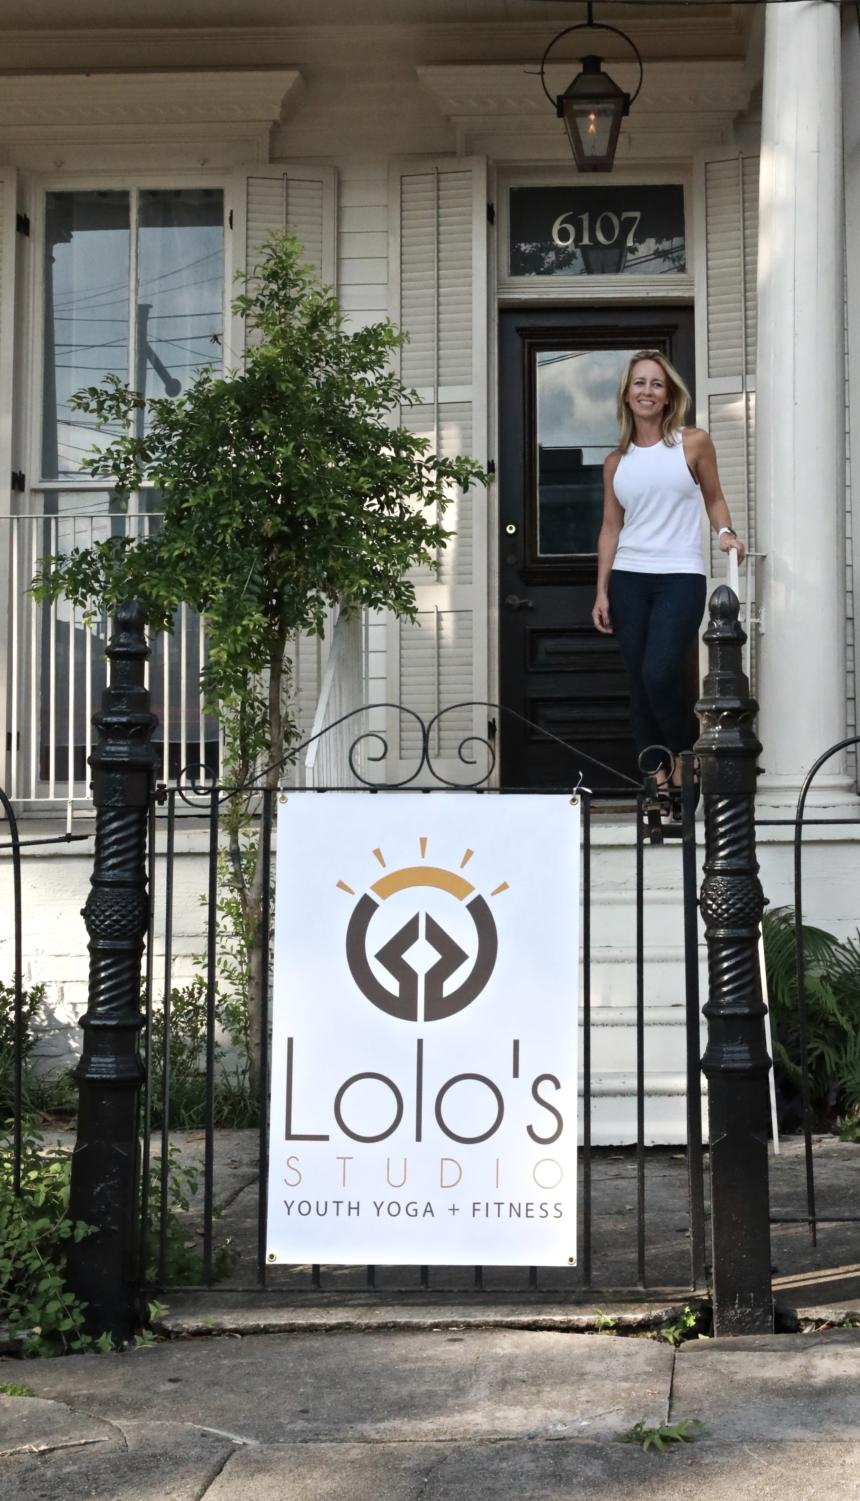 Laurie Azzano, founder of Lolo's Youth Yoga Studio, stands in front of the studio. For her, Lolo's is more than yoga — it's a positive space designed to build strength and confidence. Photo credit: Courtesy of Lolo's Studio